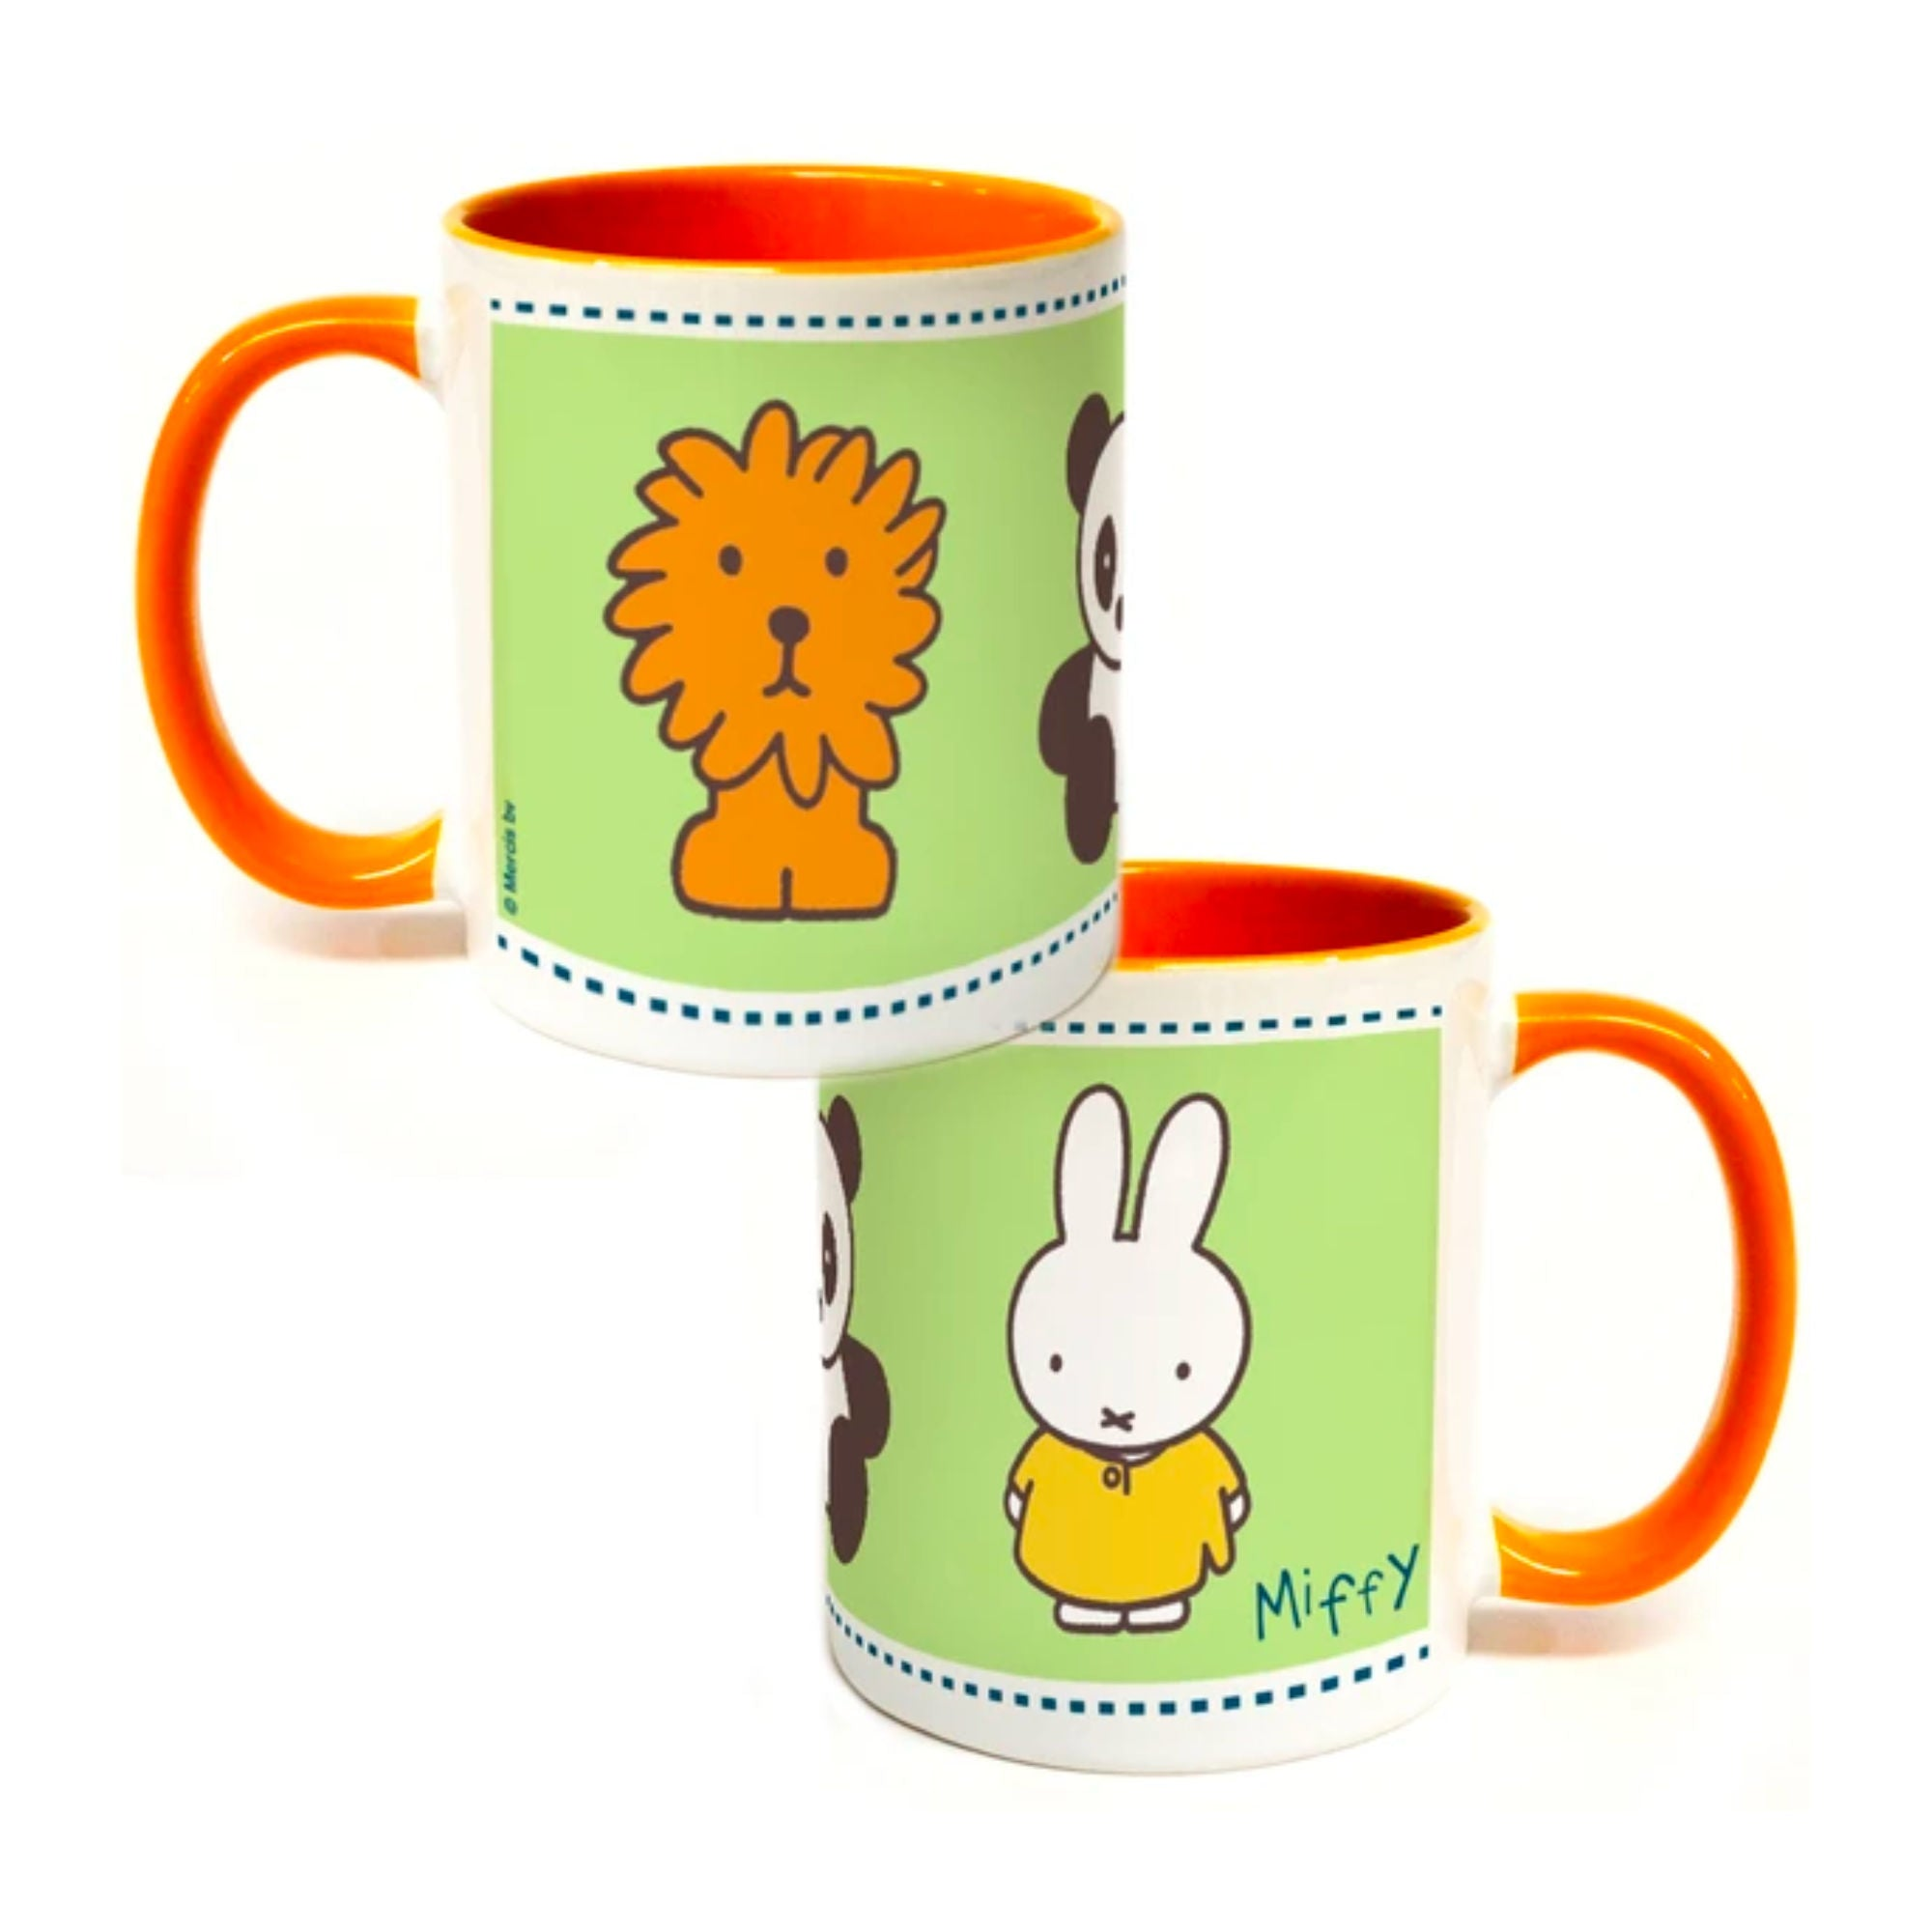 Miffy Porcelain Mug 11oz , Animal